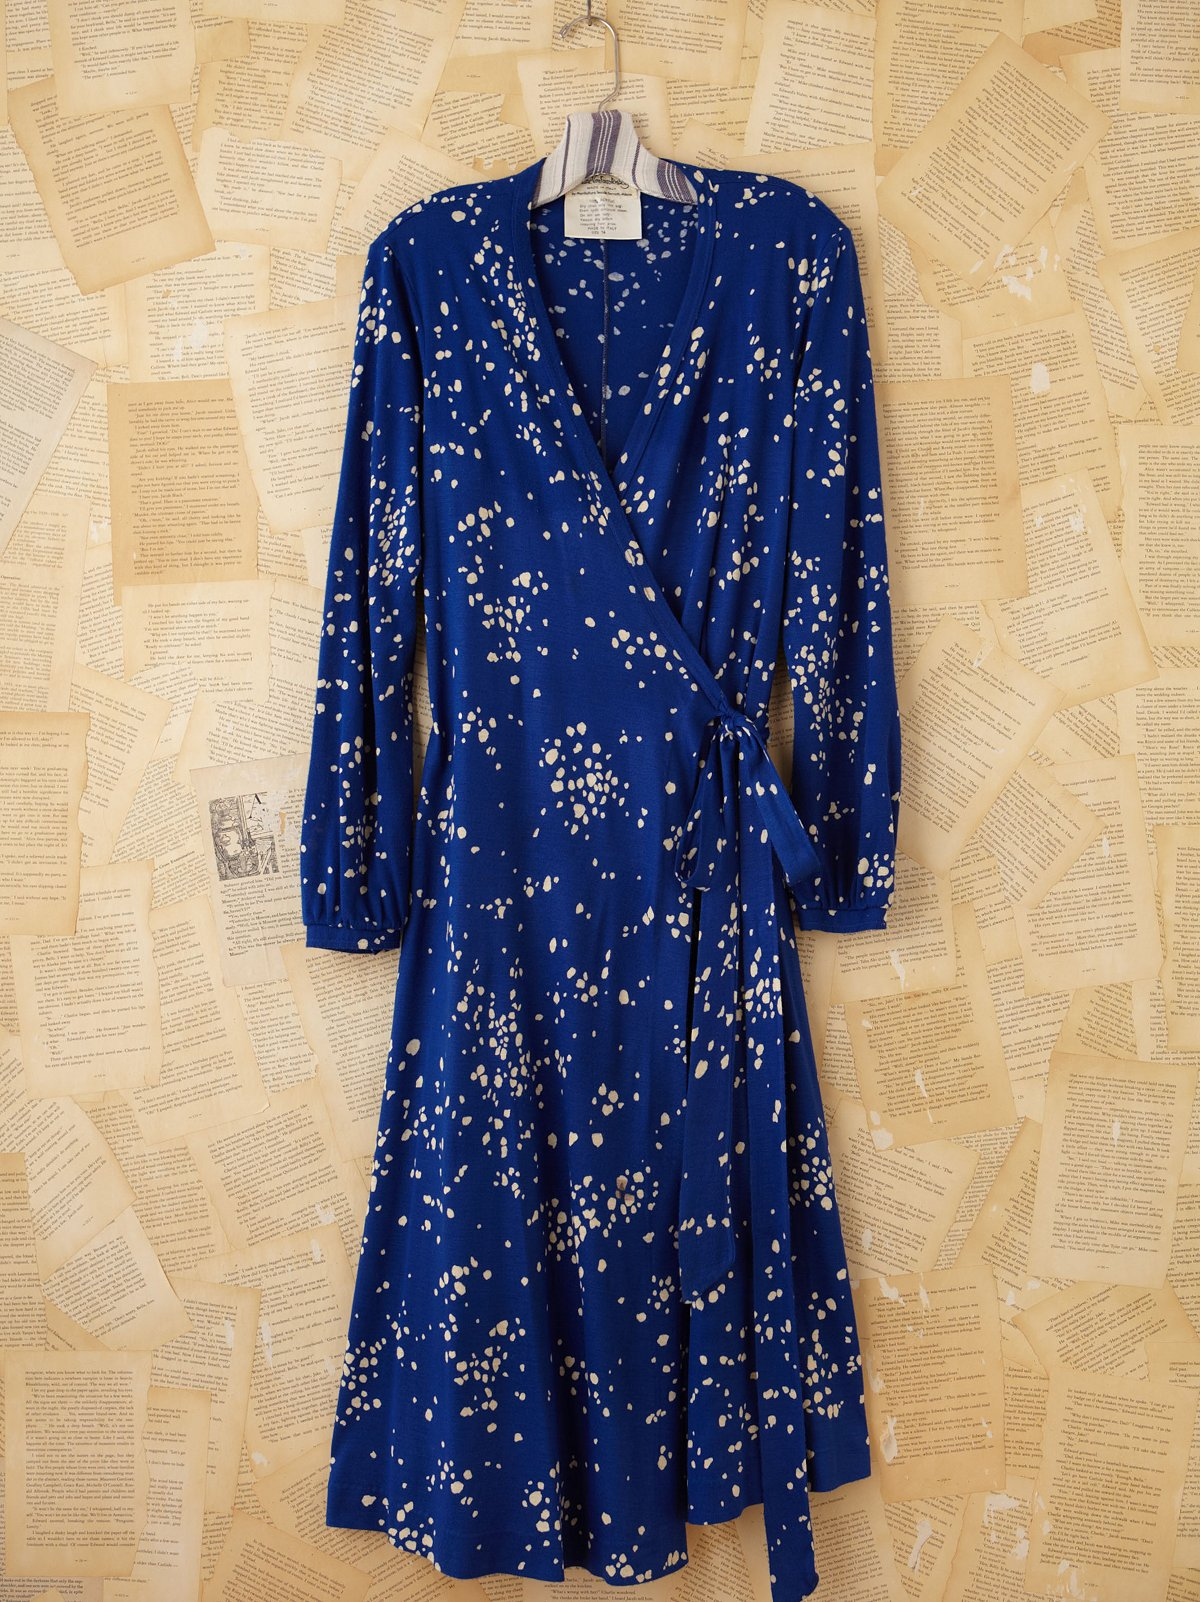 Vintage Diane von Furstenberg Blue Printed Wrap Dress